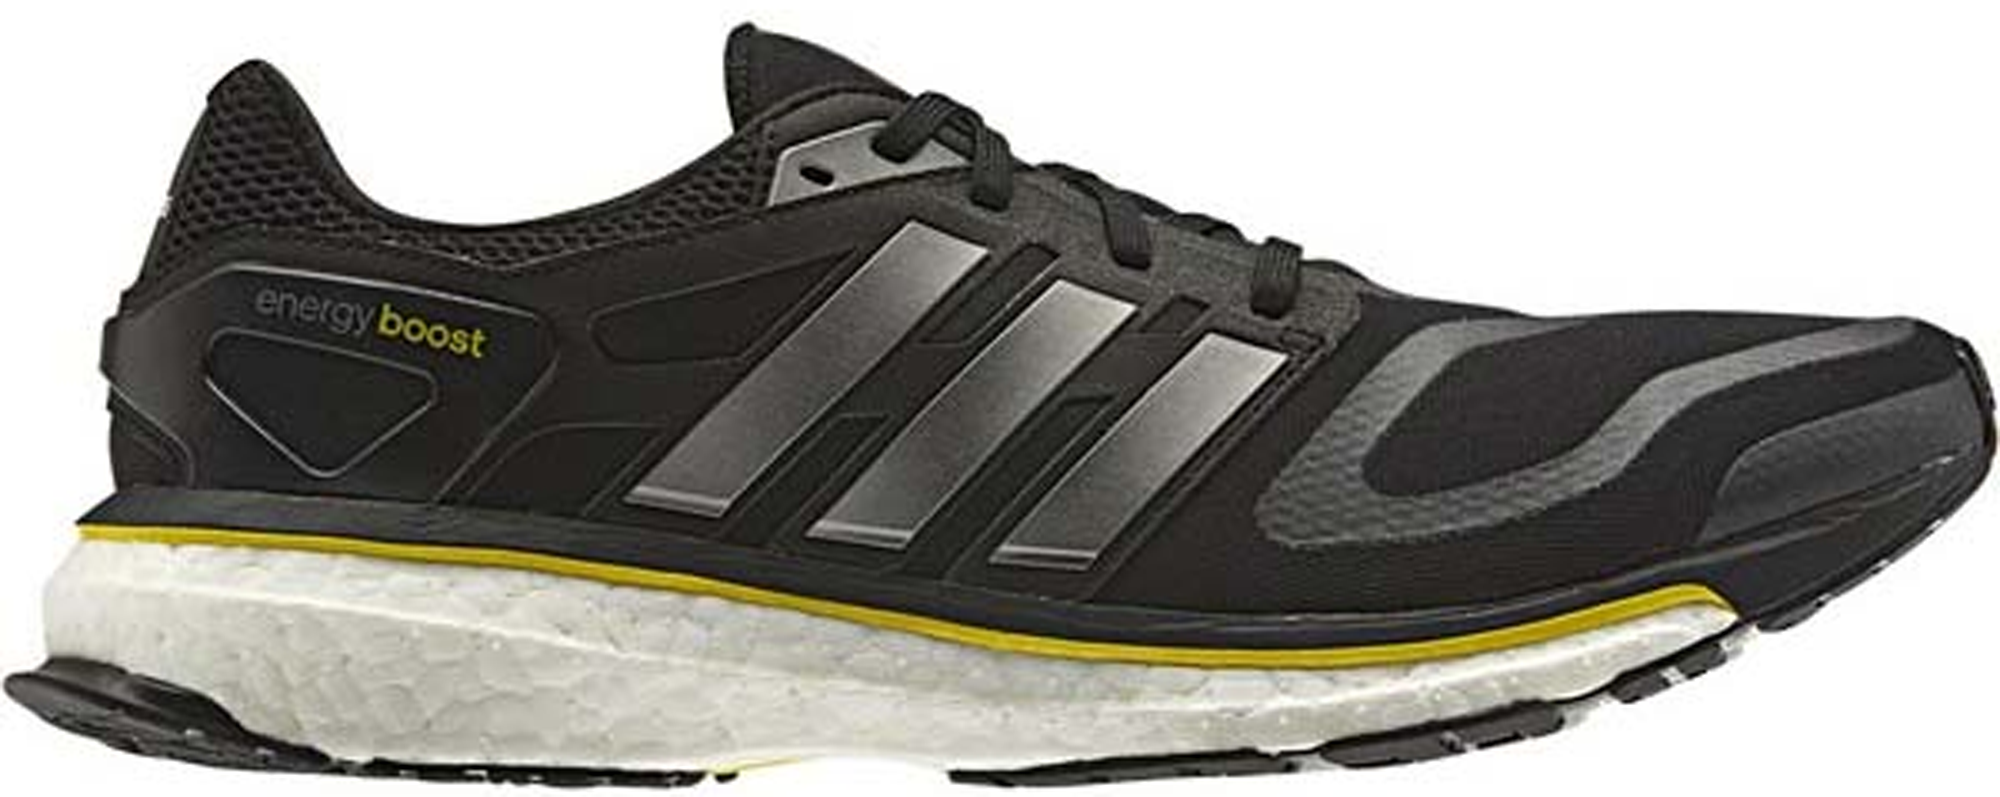 adidas Energy Boost OG 5th Anniversary Black Yellow